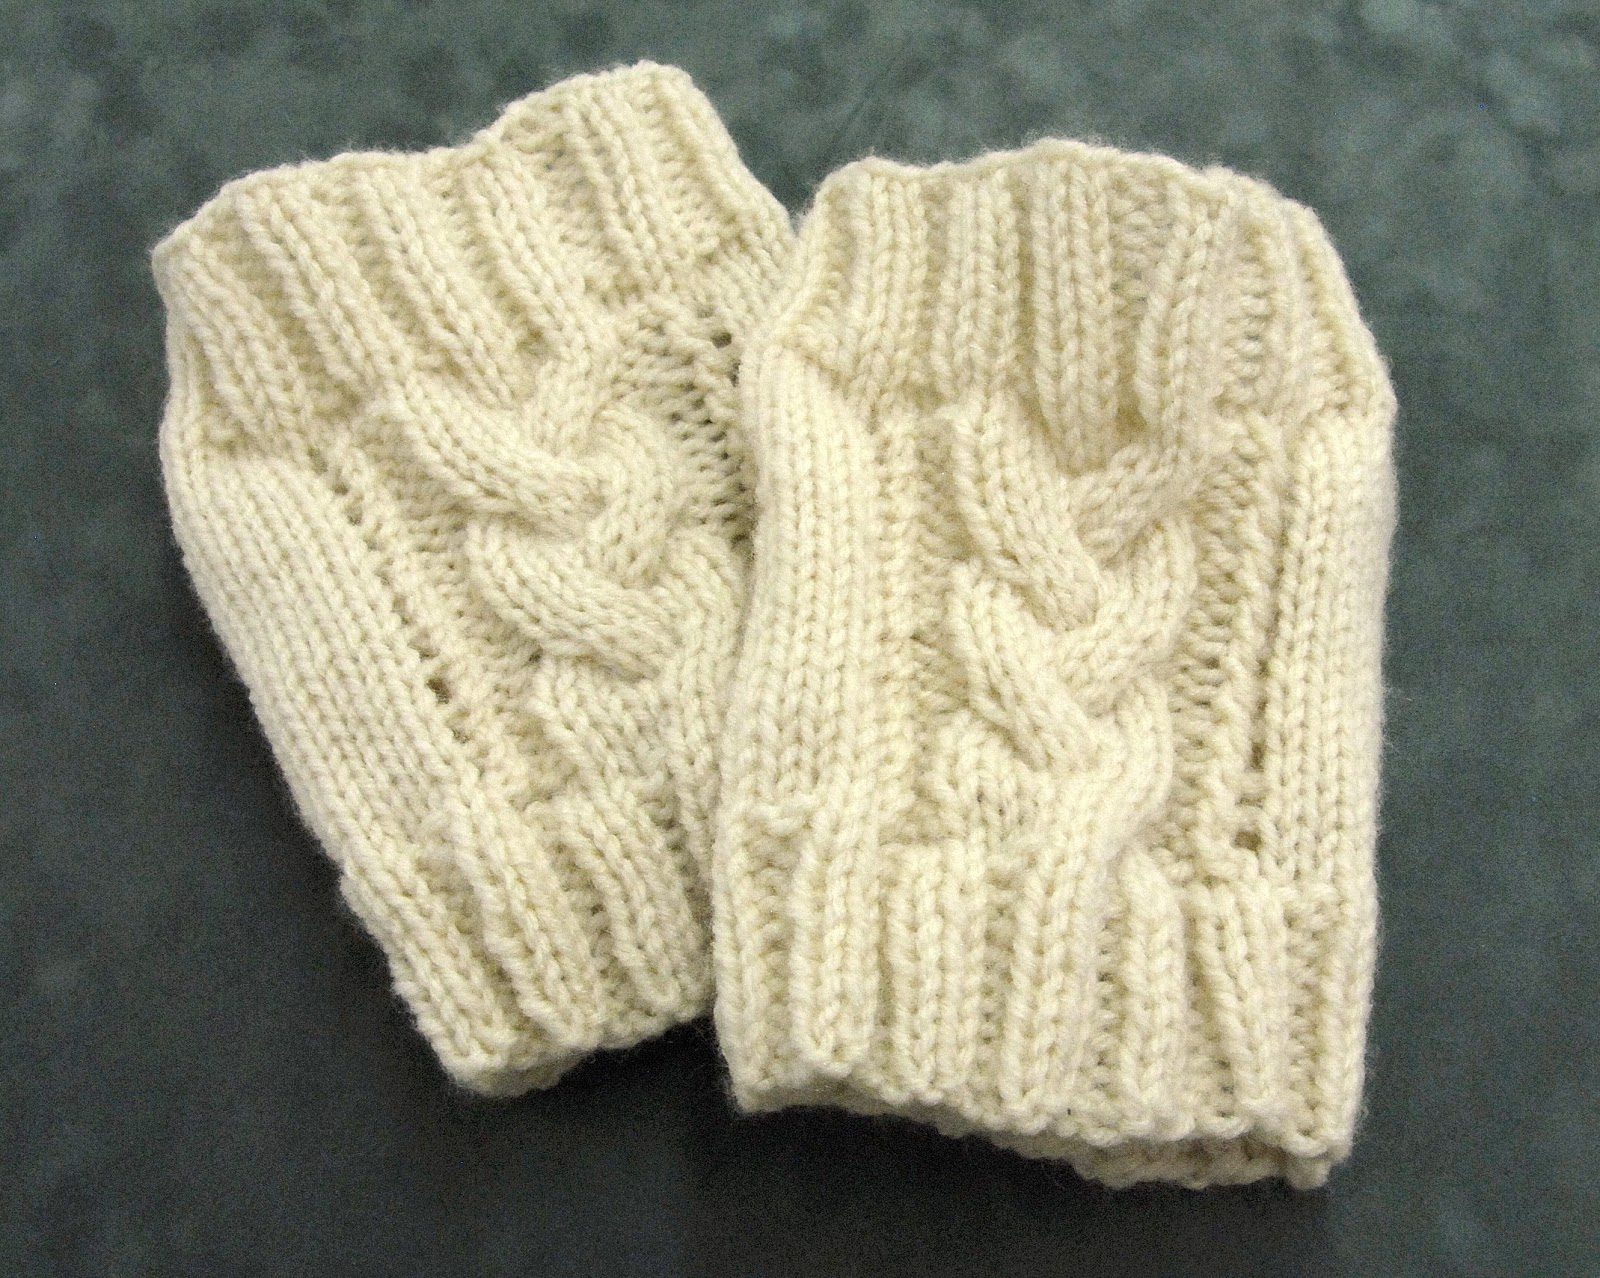 Ben Franklin Crafts and Frame Shop, Monroe, WA: Knitted Boot Cuffs ...